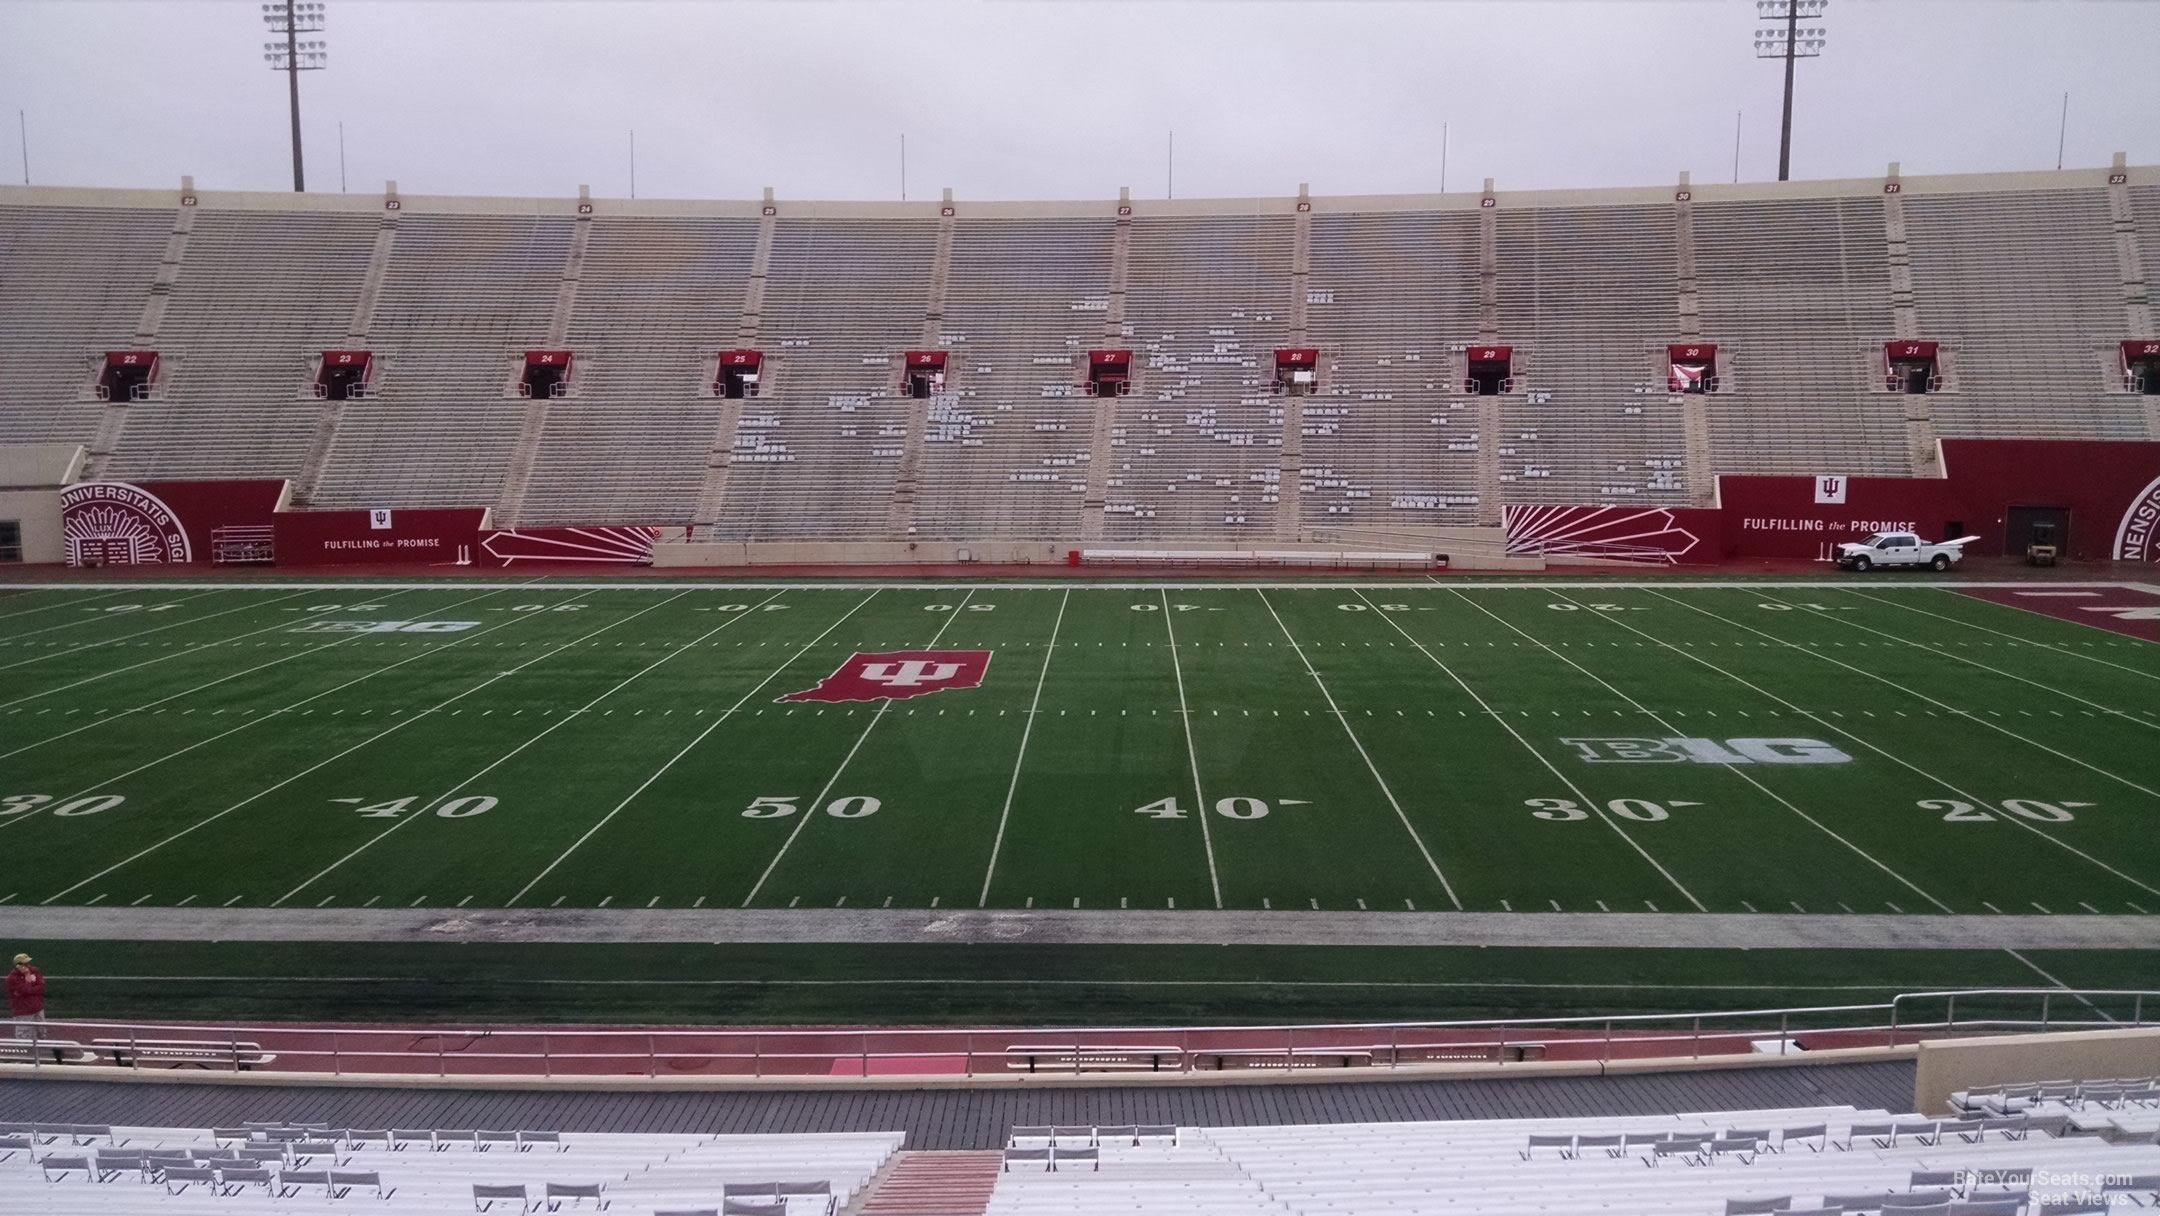 Seat View for Memorial Stadium - IN Section 6, Row 30